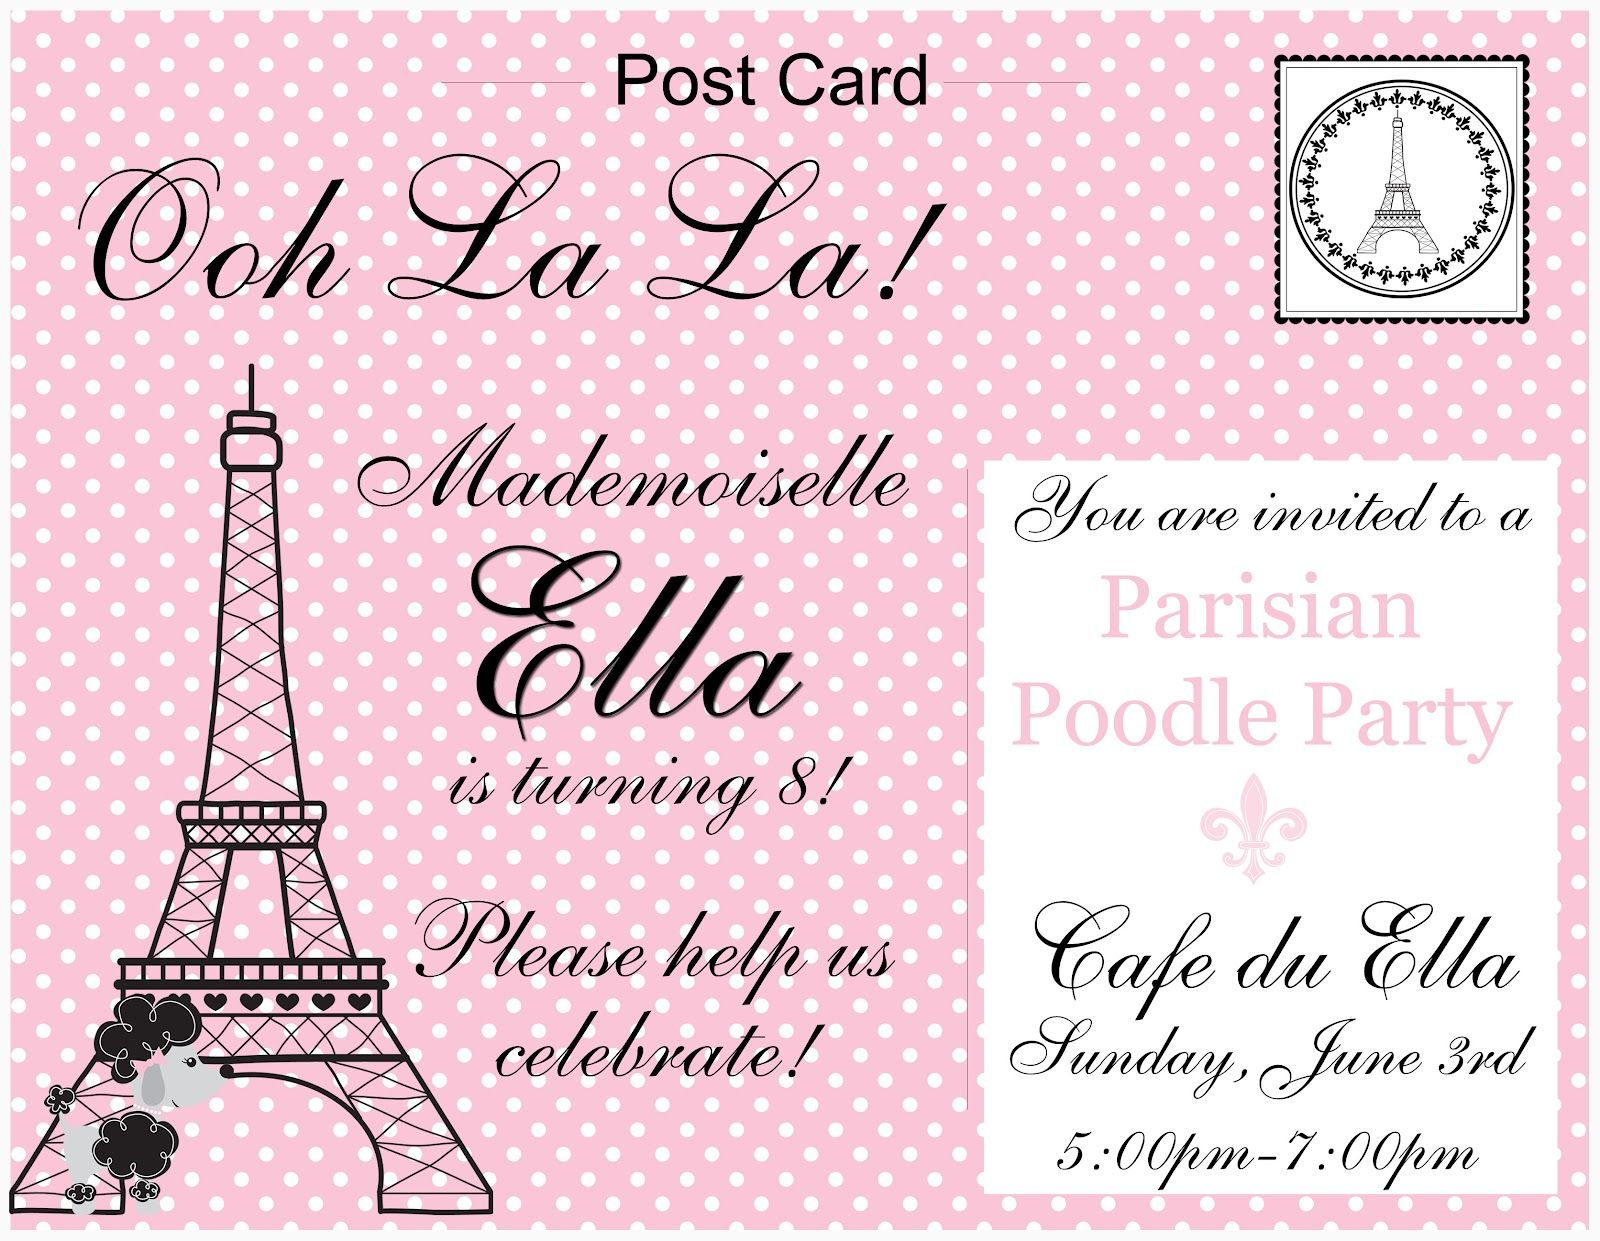 FRENCH PINK POODLE PARIS TH BIRTHDAY PARTY CELEBRATION Pink - Invitation in french to birthday party